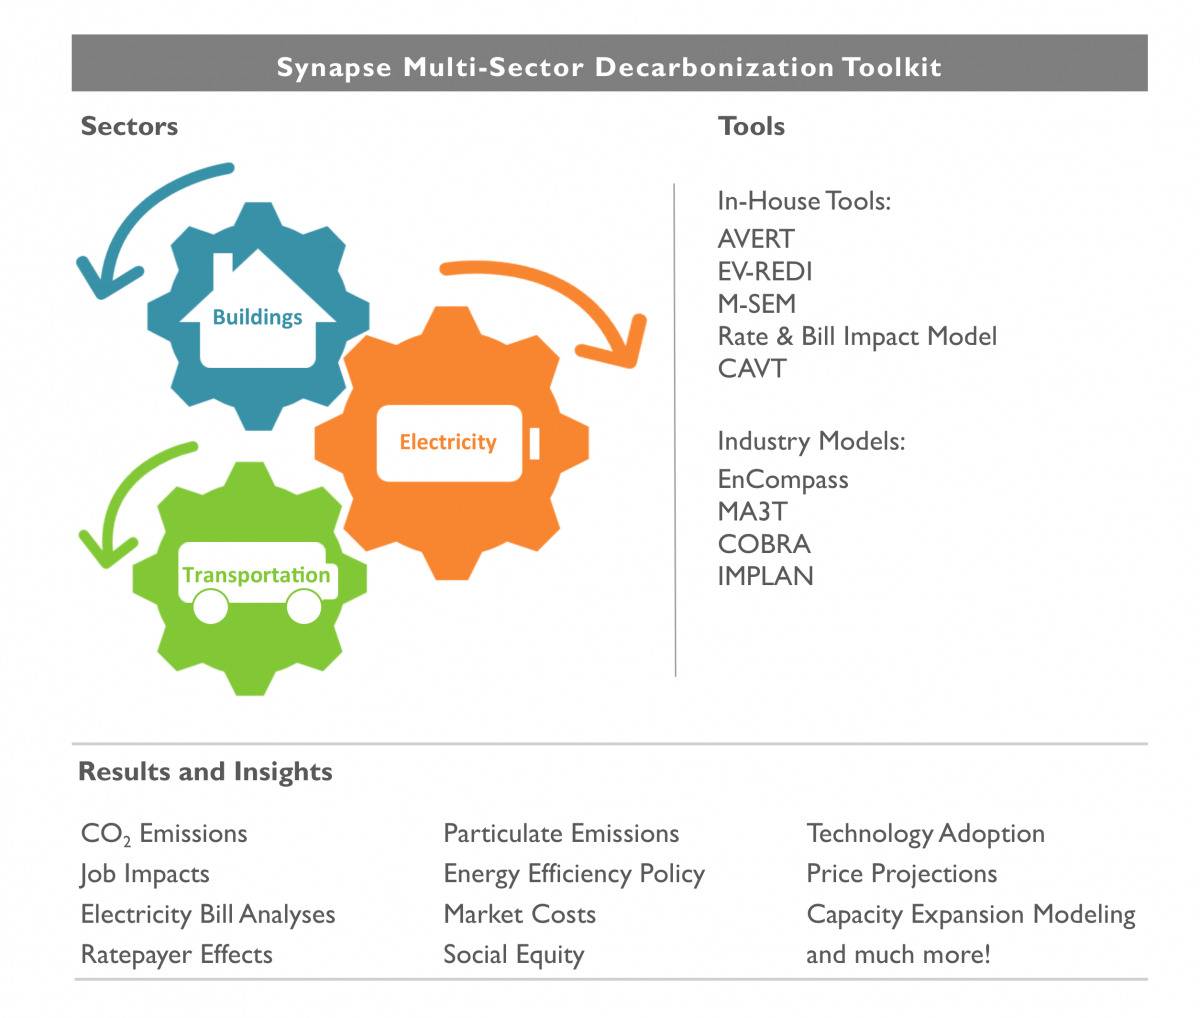 Synapse Multi-Sector Decarbonization Toolkit